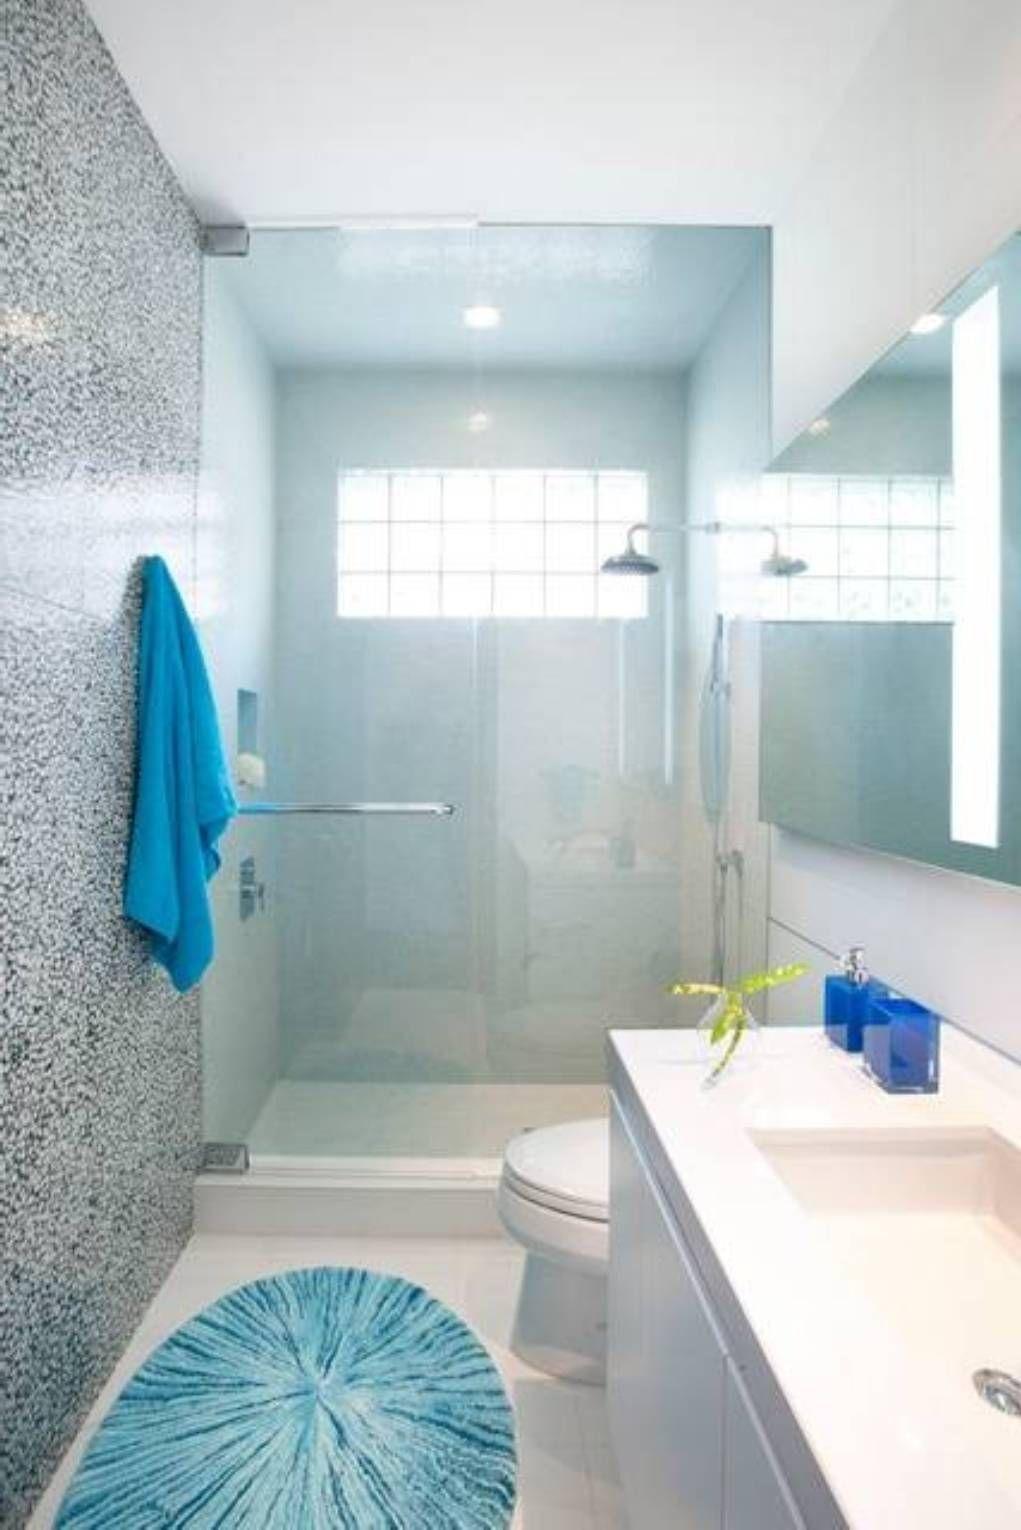 25 small bathroom ideas photo gallerytrough sink bathroom - Shower Design Ideas Small Bathroom